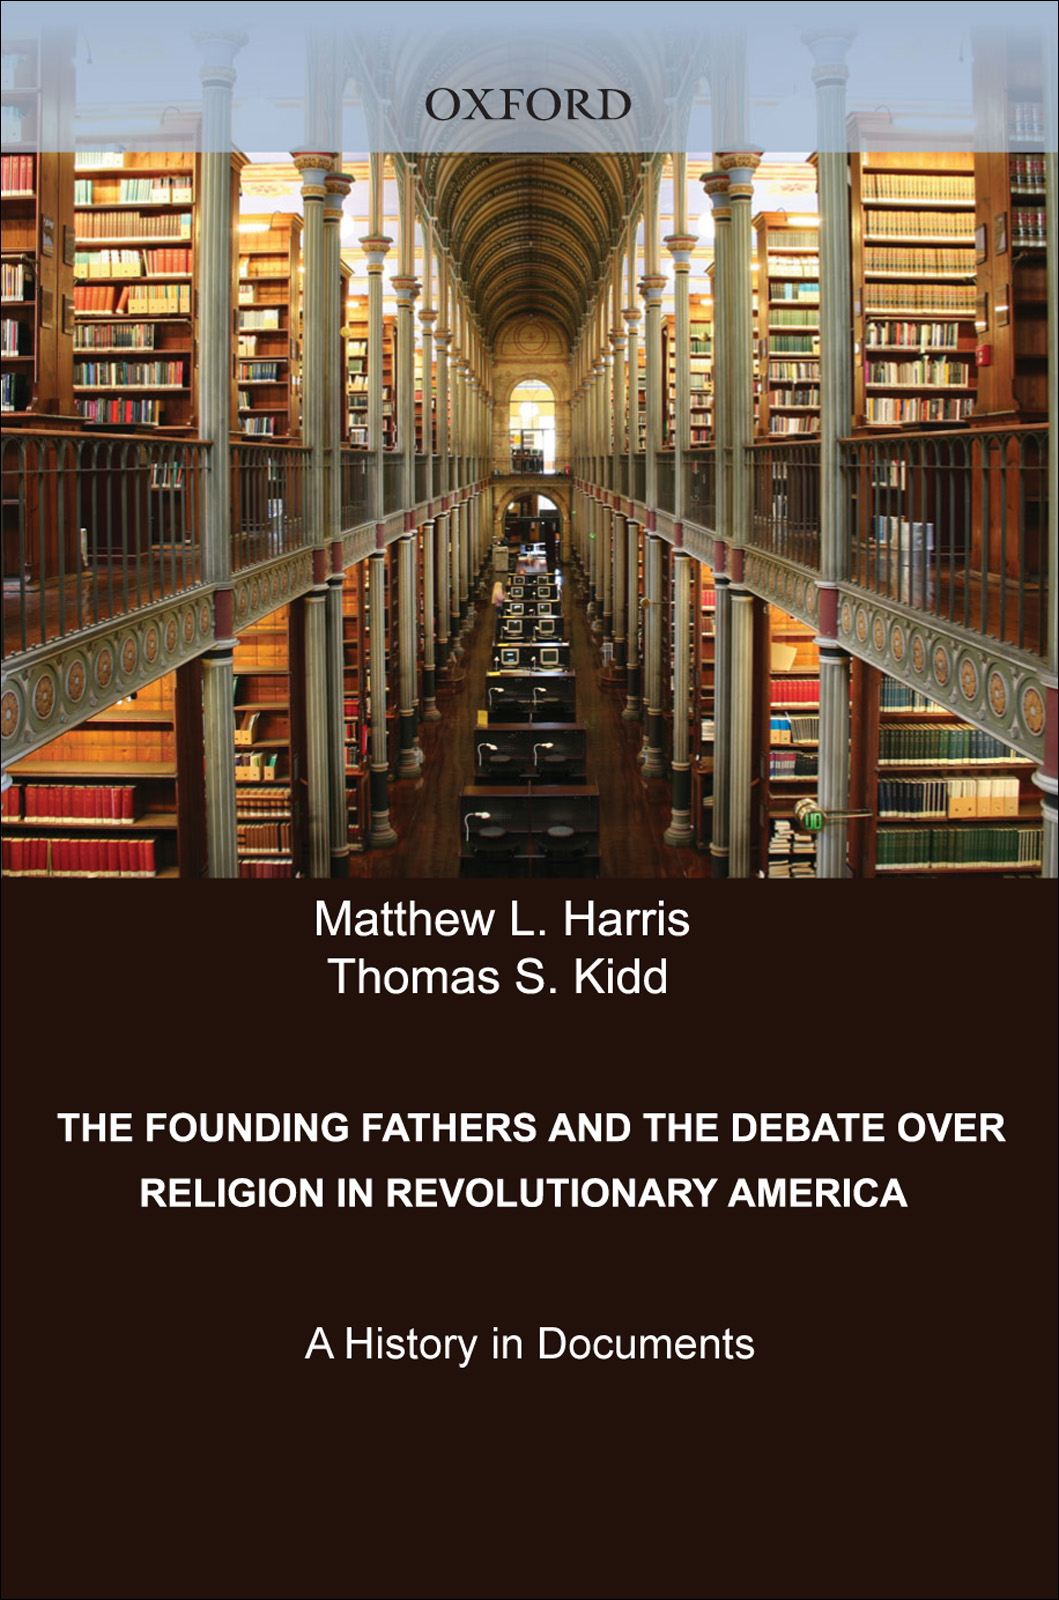 The Founding Fathers and the Debate over Religion in Revolutionary America : A History in Documents